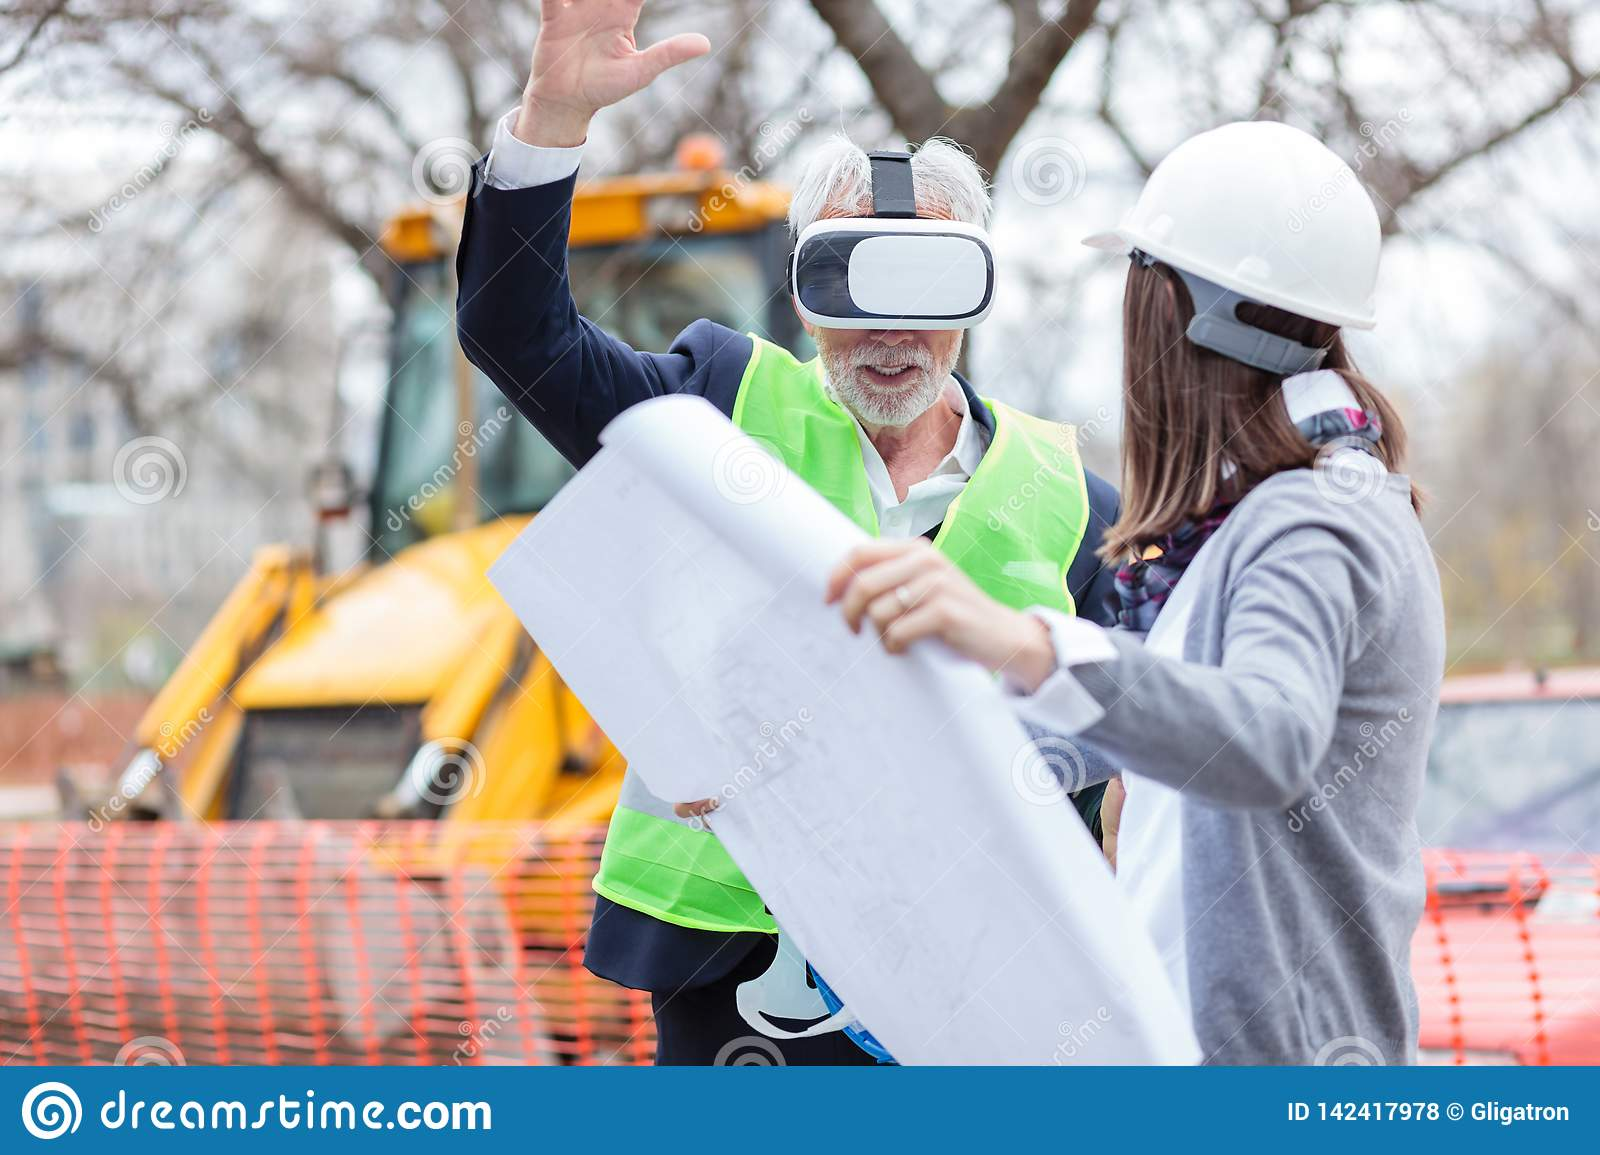 Senior architect or businessman using virtual reality goggles on a construction site